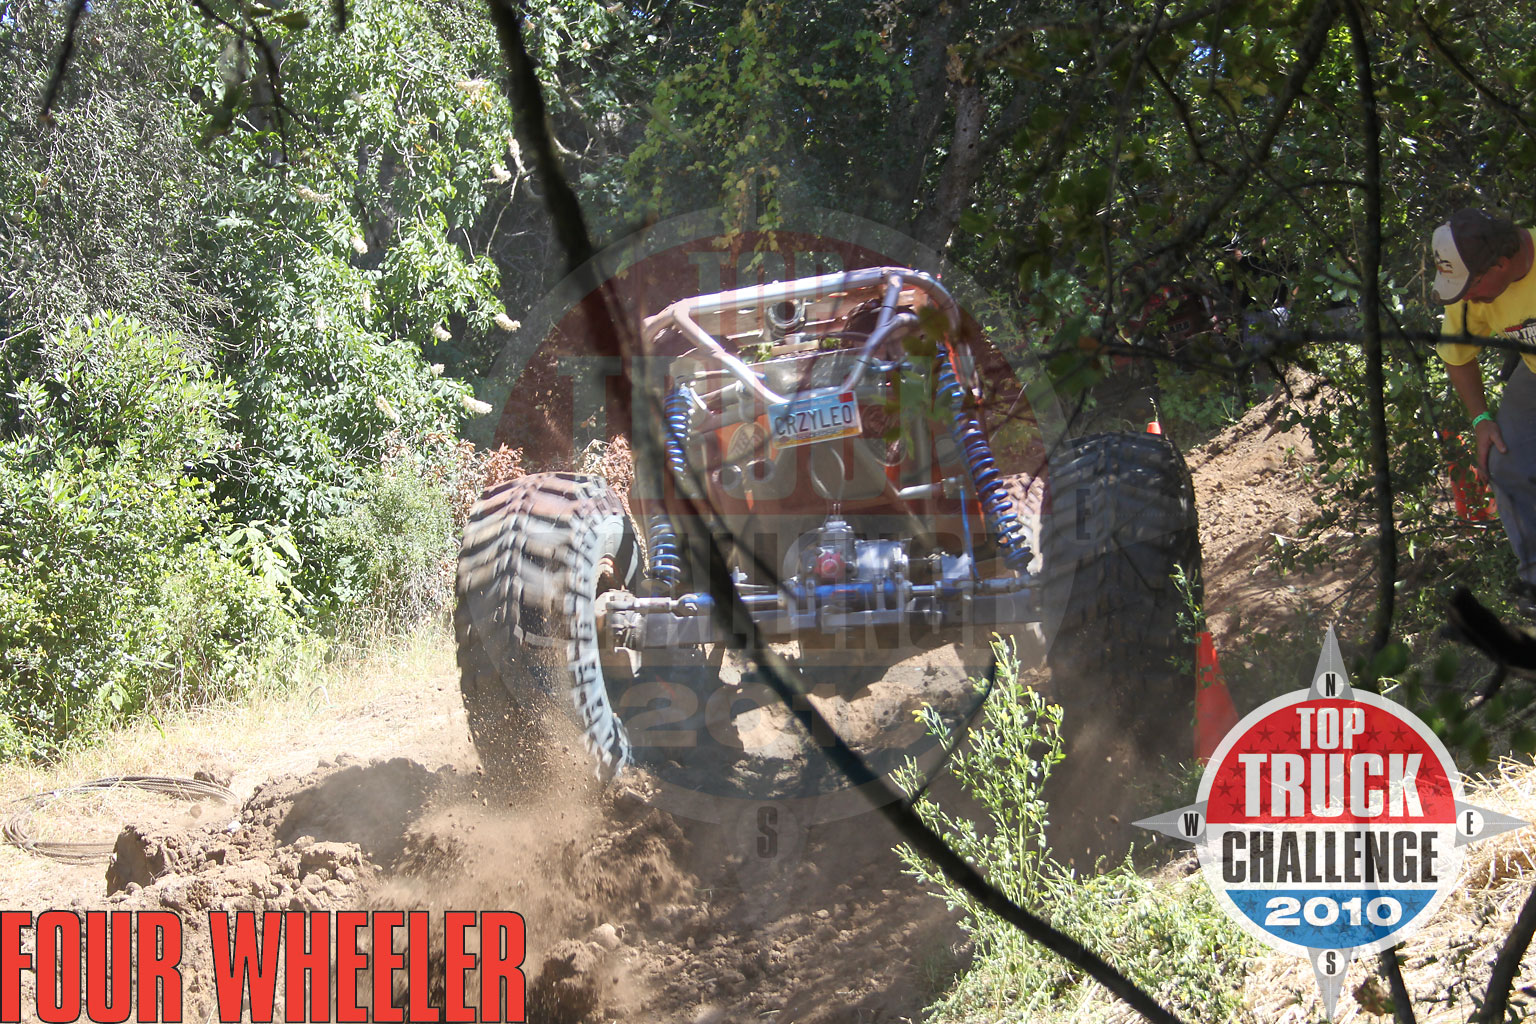 129 1006 4827+2010 top truck challenge hill climb+leo kuether 2007 cole works fat girl buggy